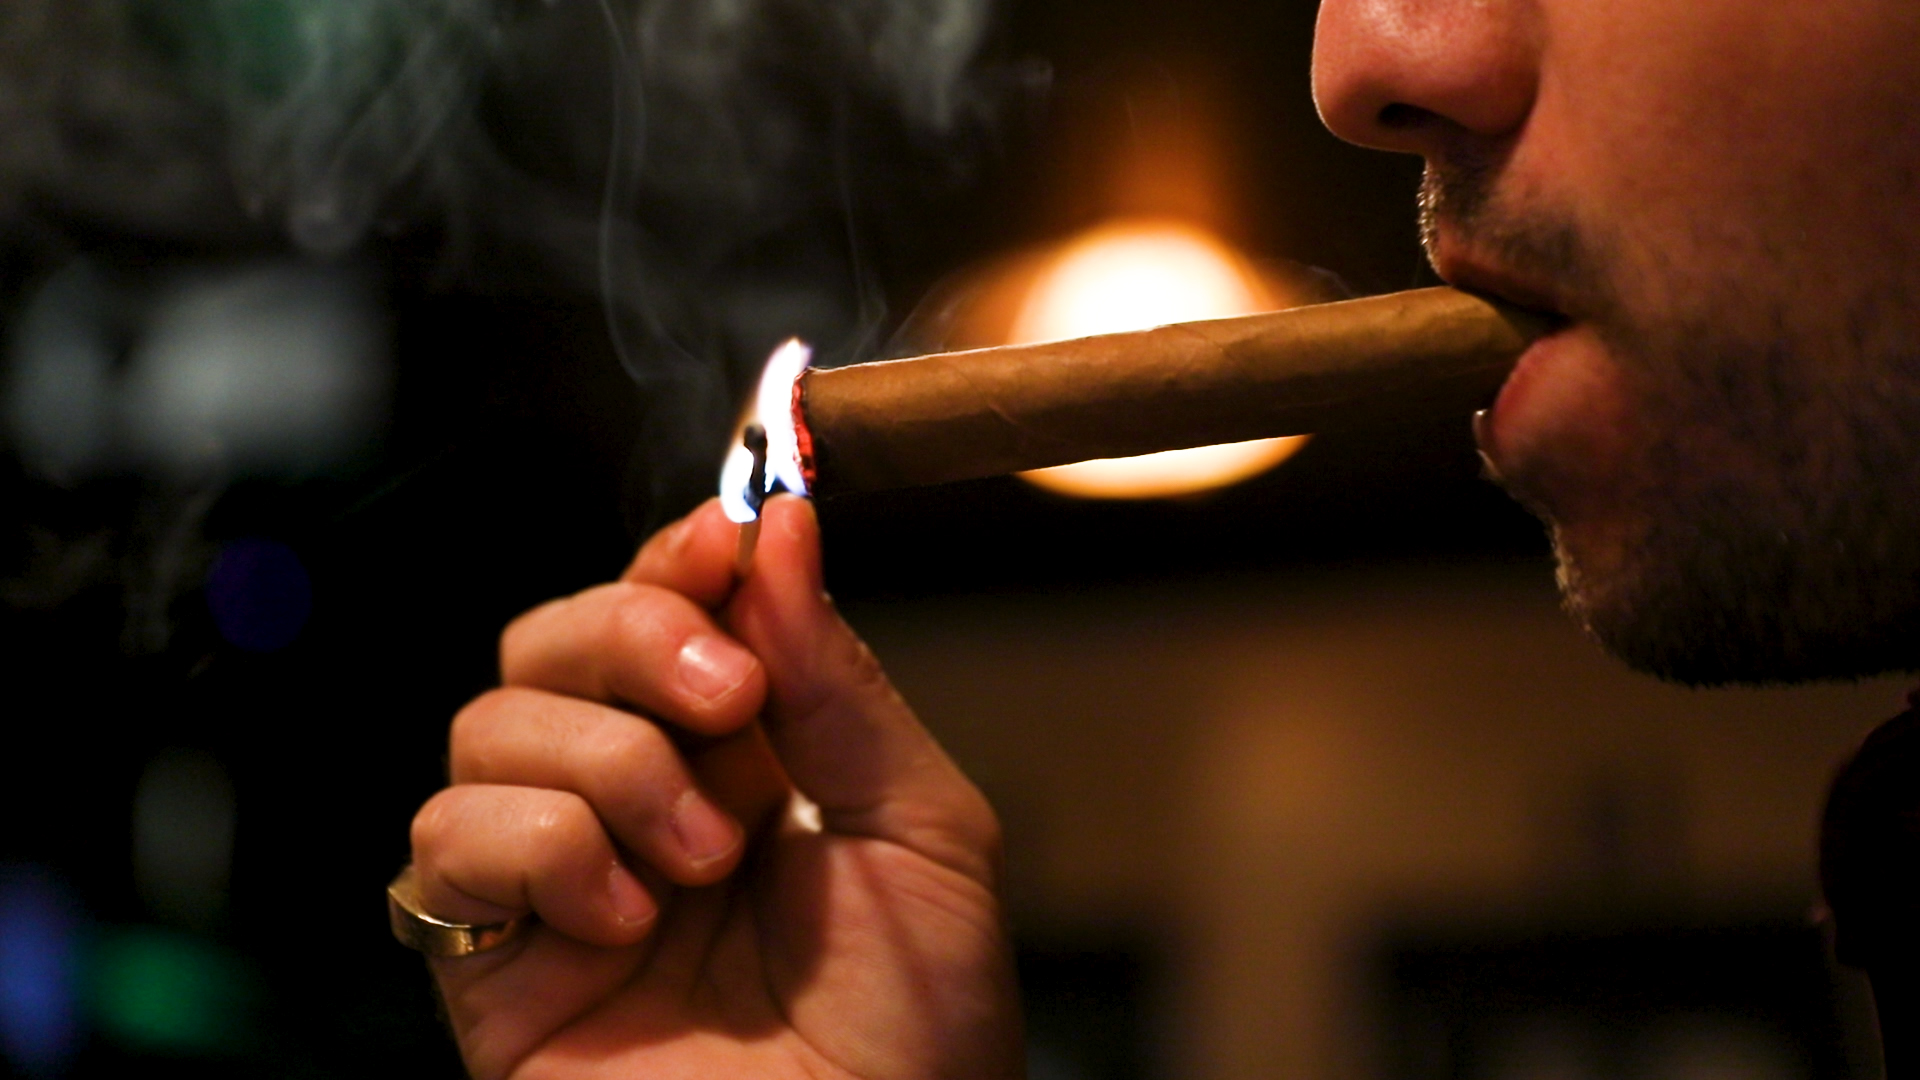 Soho Cigar Bar is the oldest cigar bar in NYC and has the only cigar Sommelier in New York